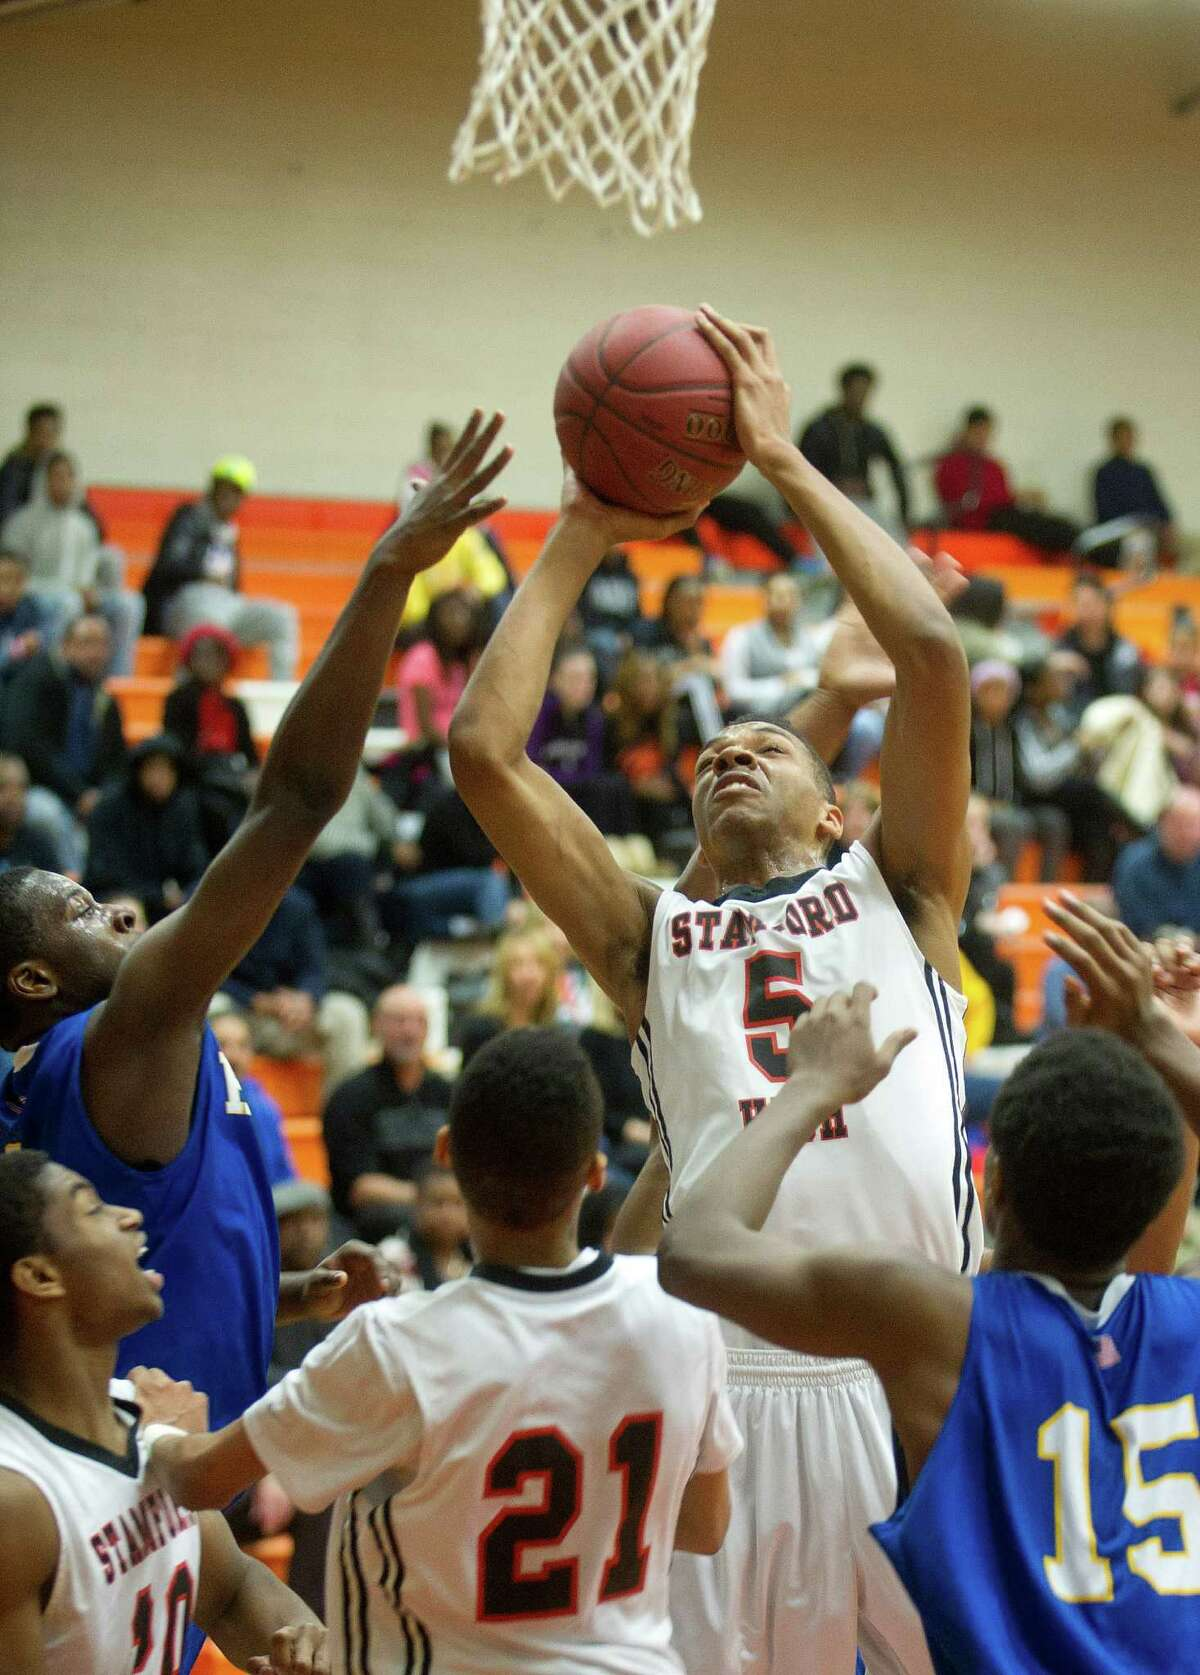 Stamford's Kweshon Askew jumps to take a shot against Harding during Friday's basketball game at Stamford High School on February 13, 2015.